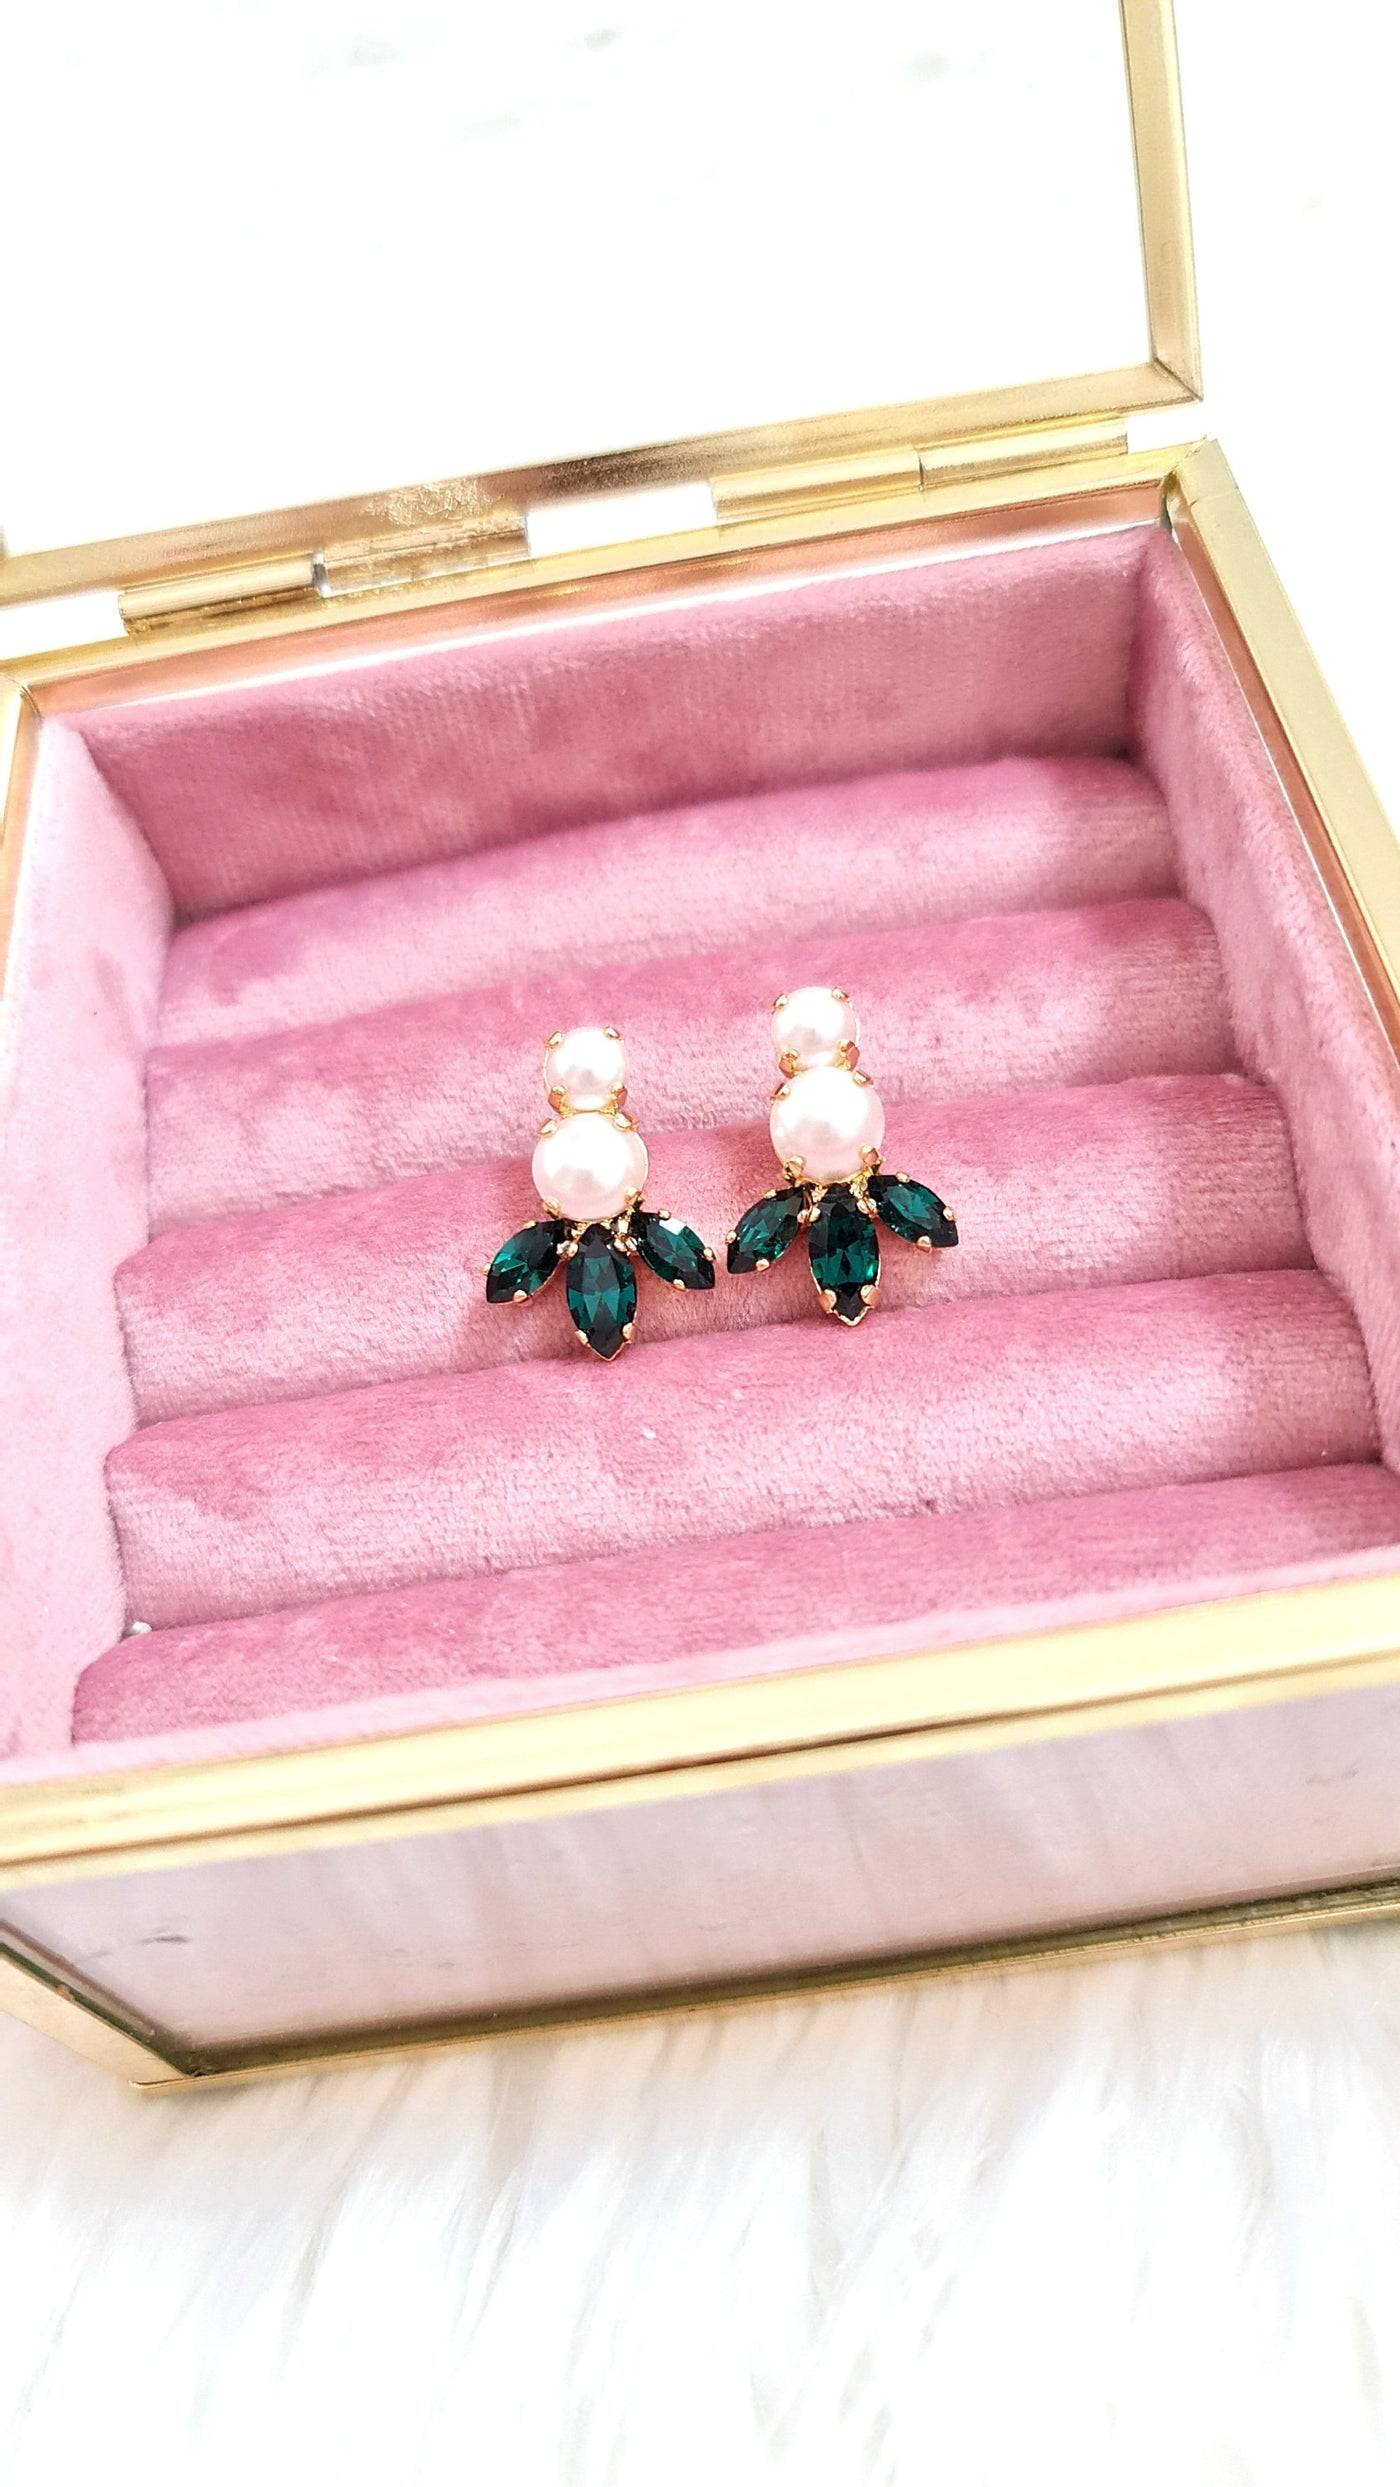 Emerald Earrings, Bridal Emerald Pearl Earrings, Green Stud Earrings, Green Crystal Earrings, Emerald Bridesmaids Earrings, Gift For Her